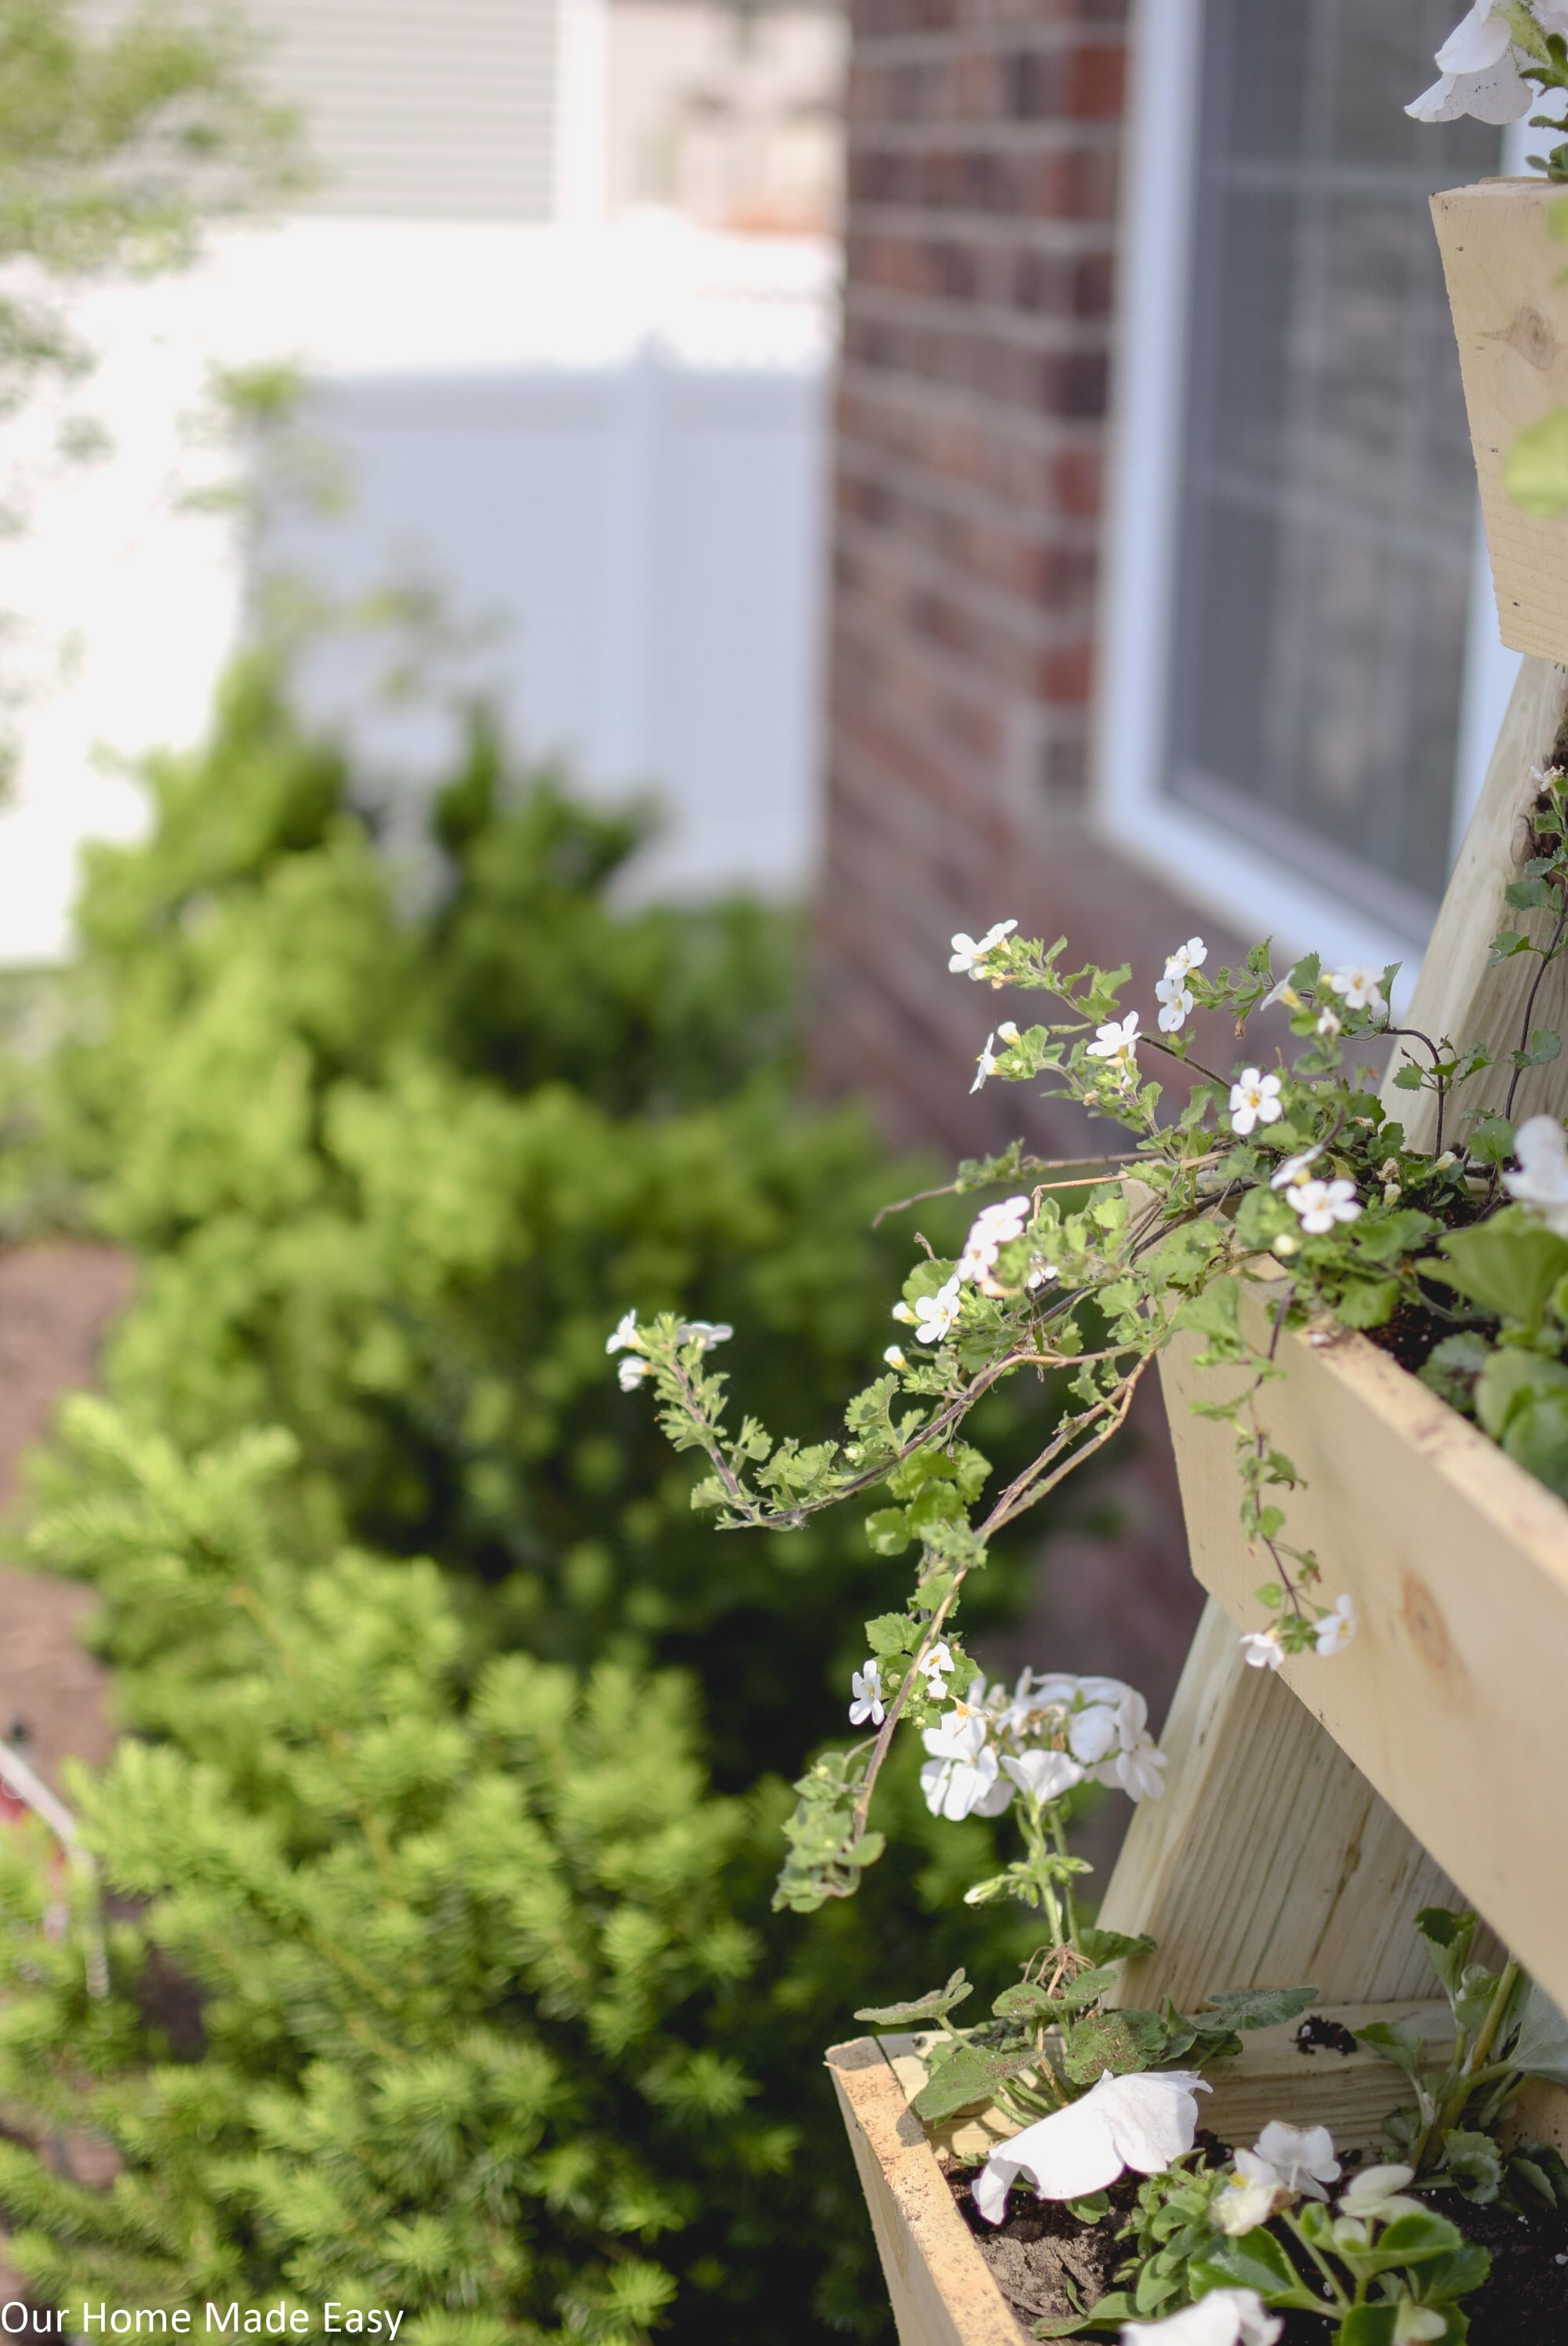 This DIY cedar latter planter is perfect for small plants, herbs, or flowers!